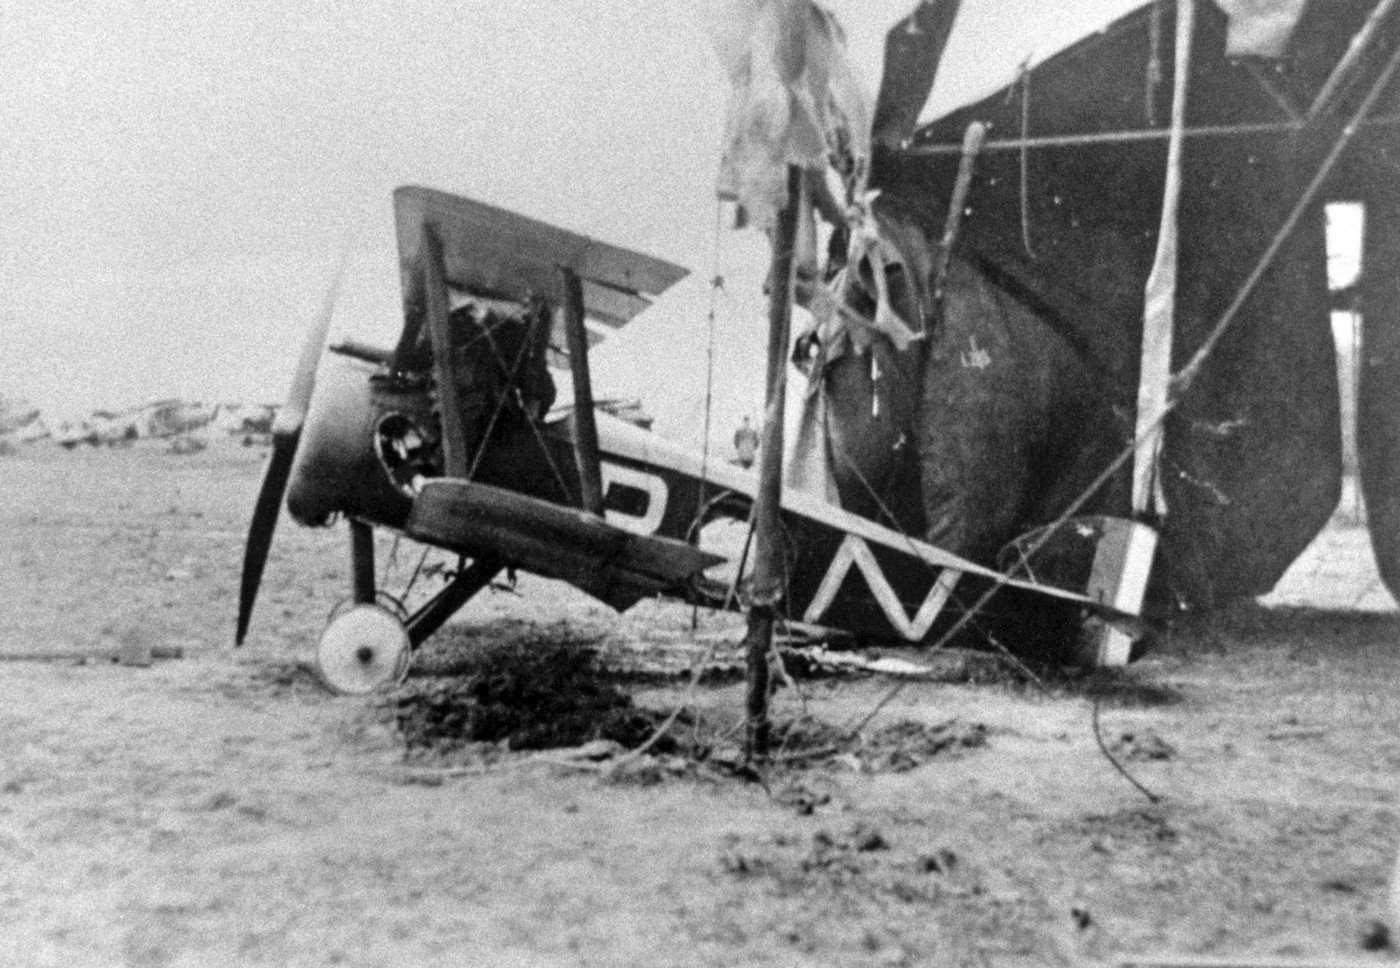 The Royal Flying Corps During Operation MICHAEL - RAF CASPS - Medium